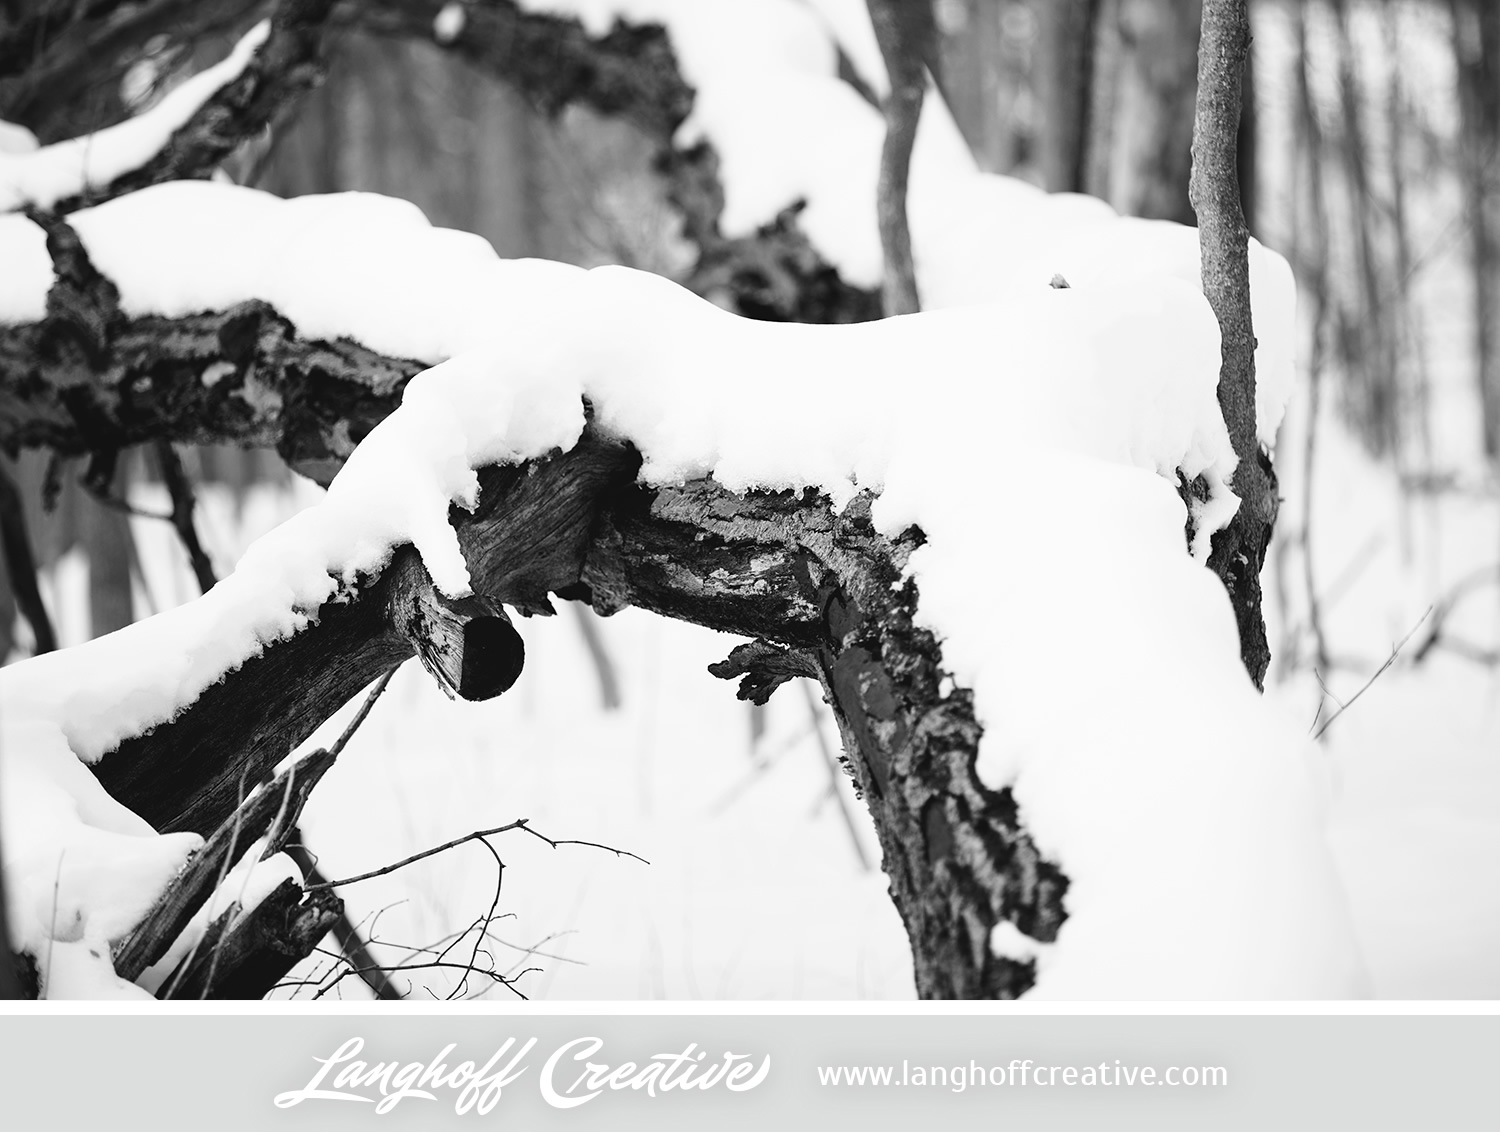 LanghoffCreative-20130308-winter12-image.jpg